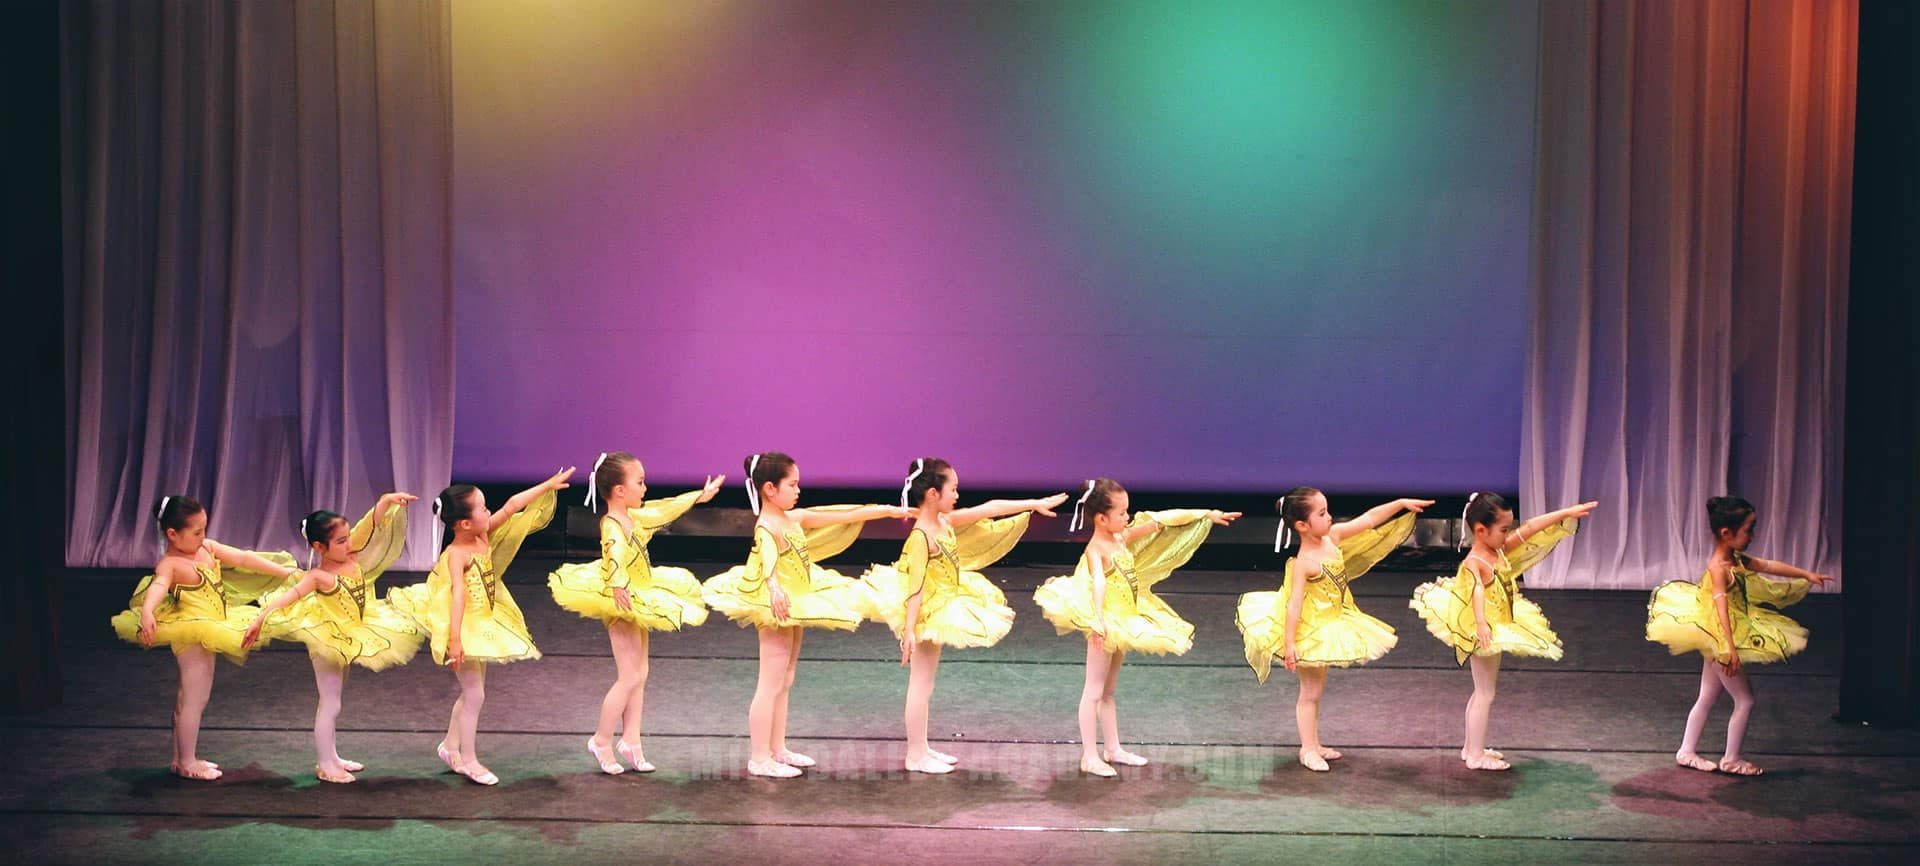 kids ballet dancers on stage